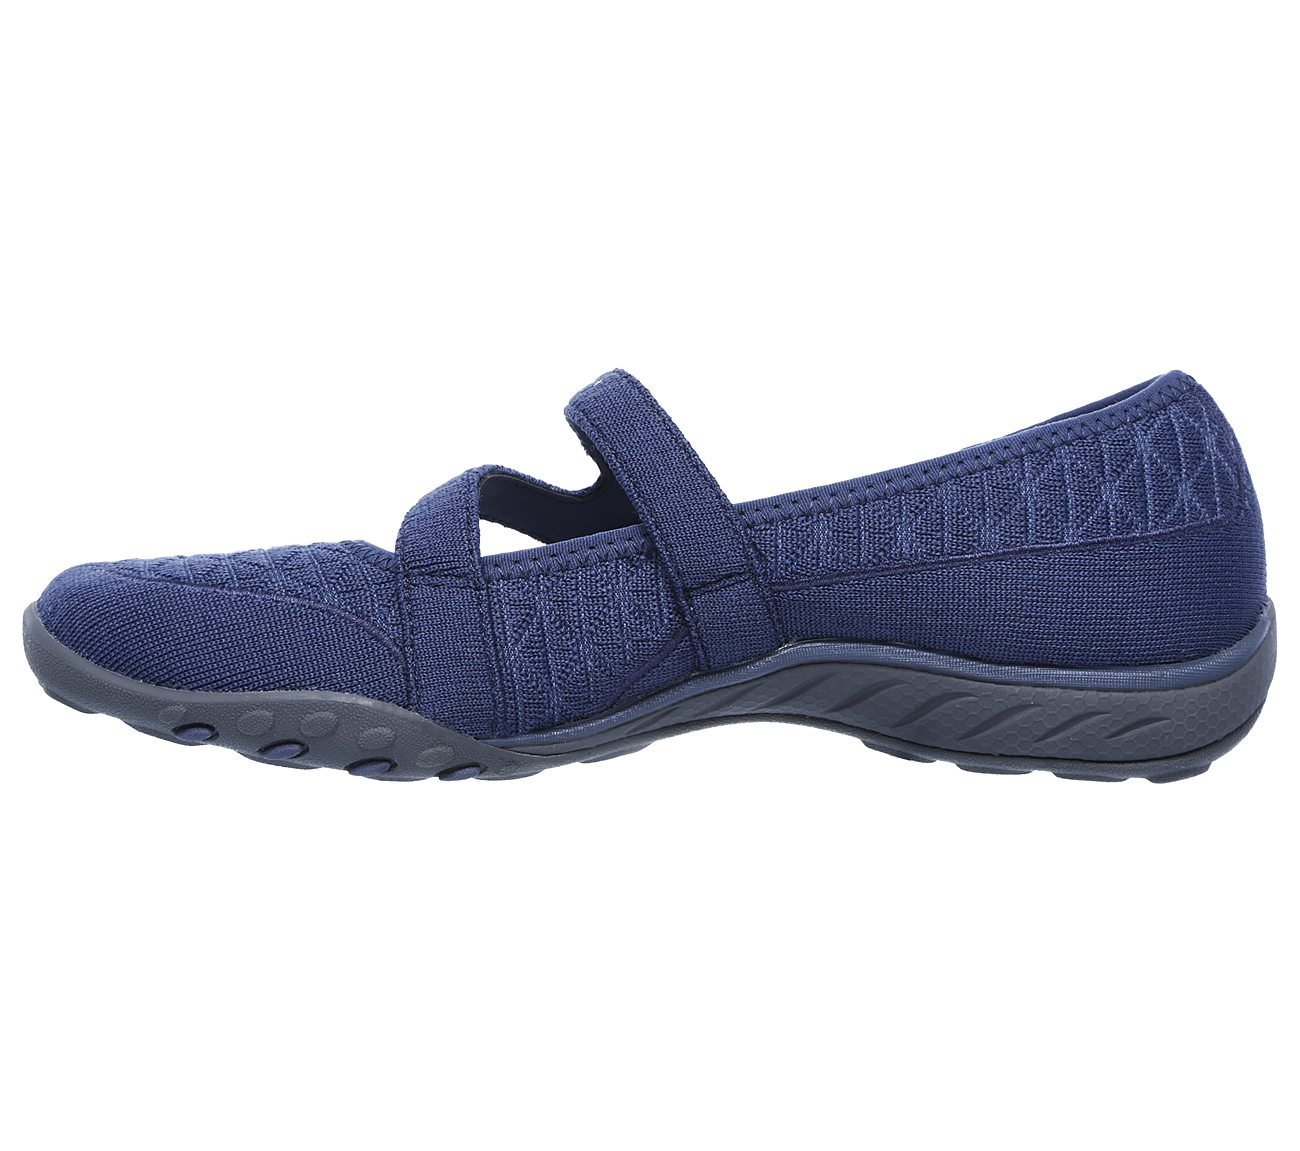 95381f340c16 Buy SKECHERS Relaxed Fit  Breathe Easy - Boss Lady SKECHERS Active ...